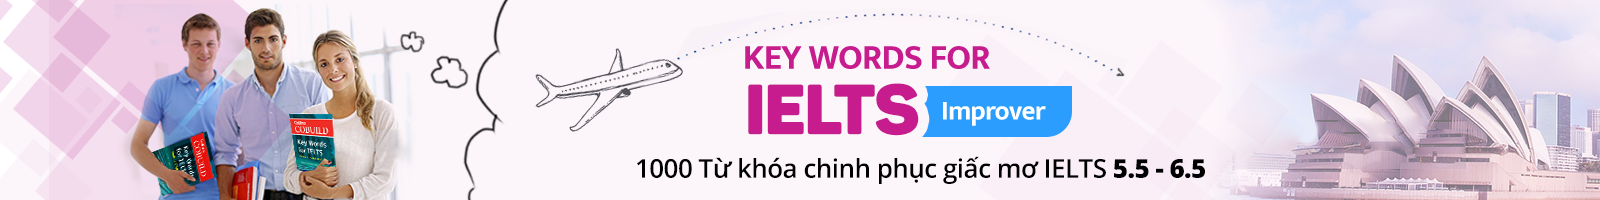 KEY WORDS FOR IELTS (Improver)